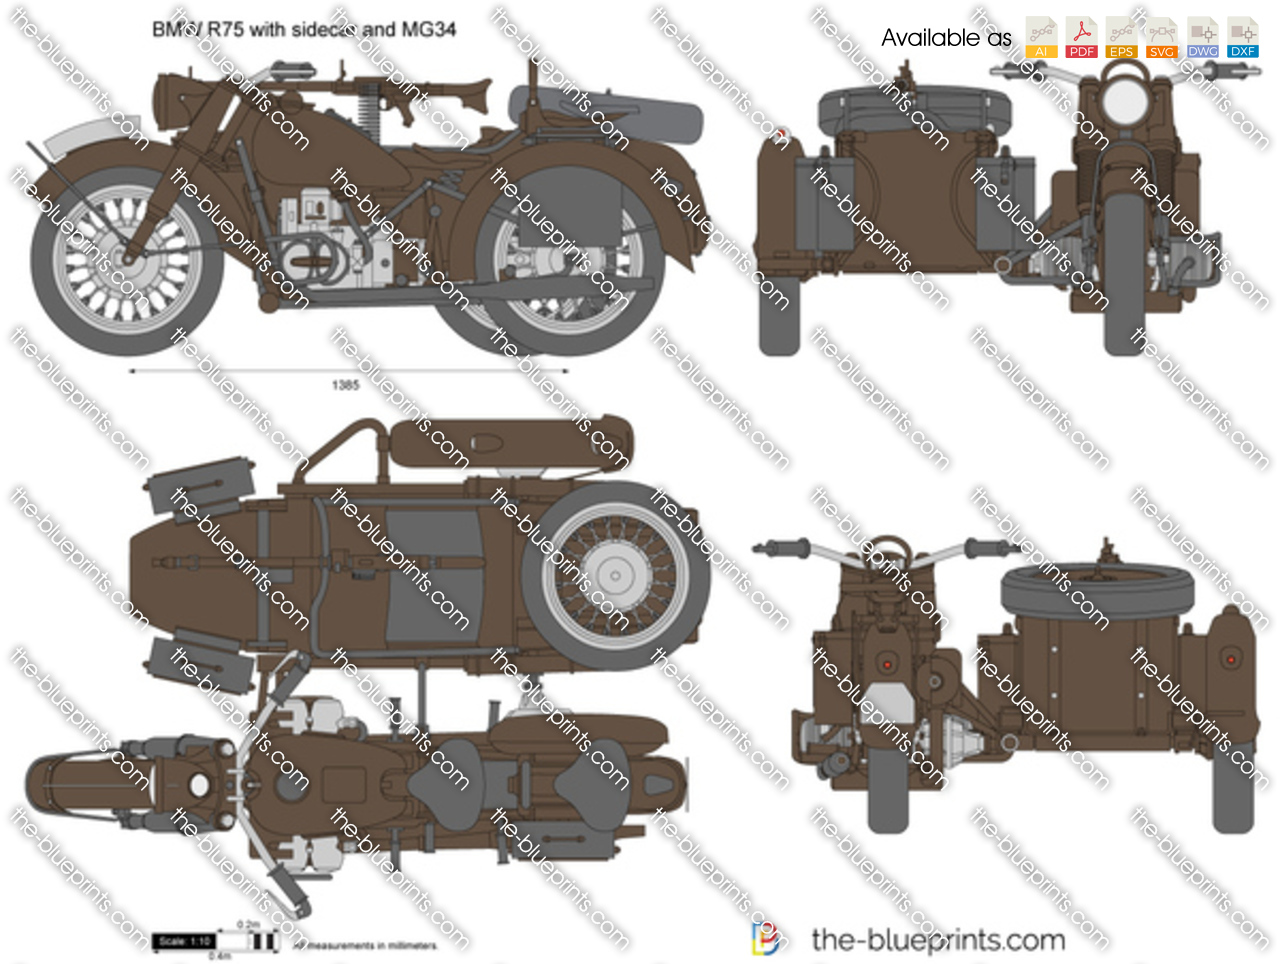 BMW R75 with sidecar and MG34